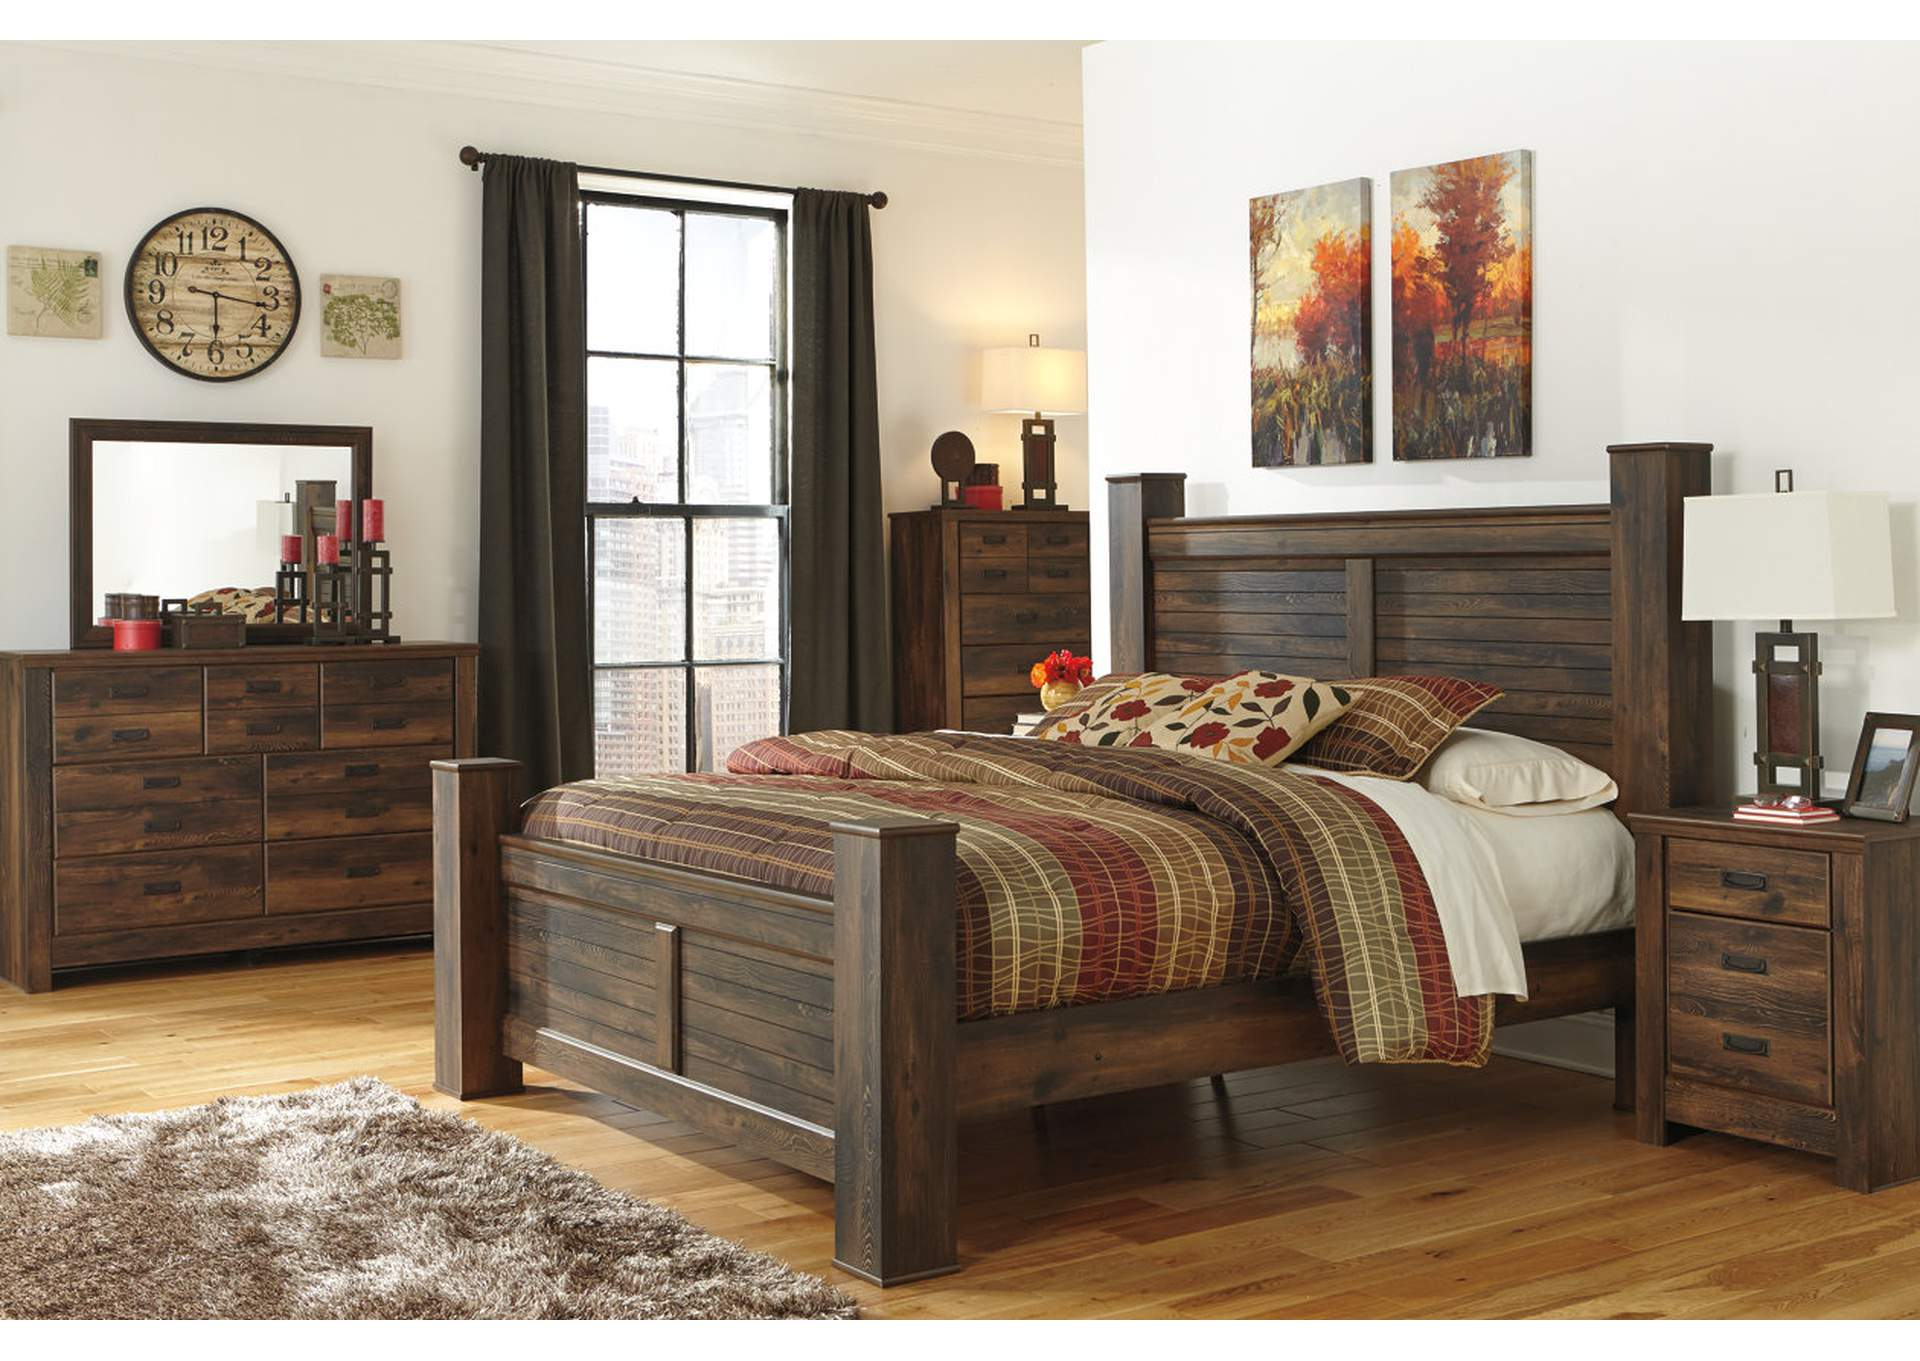 Quinden King Poster Bed w/Dresser, Mirror, Drawer Chest & Nightstand,Signature Design By Ashley